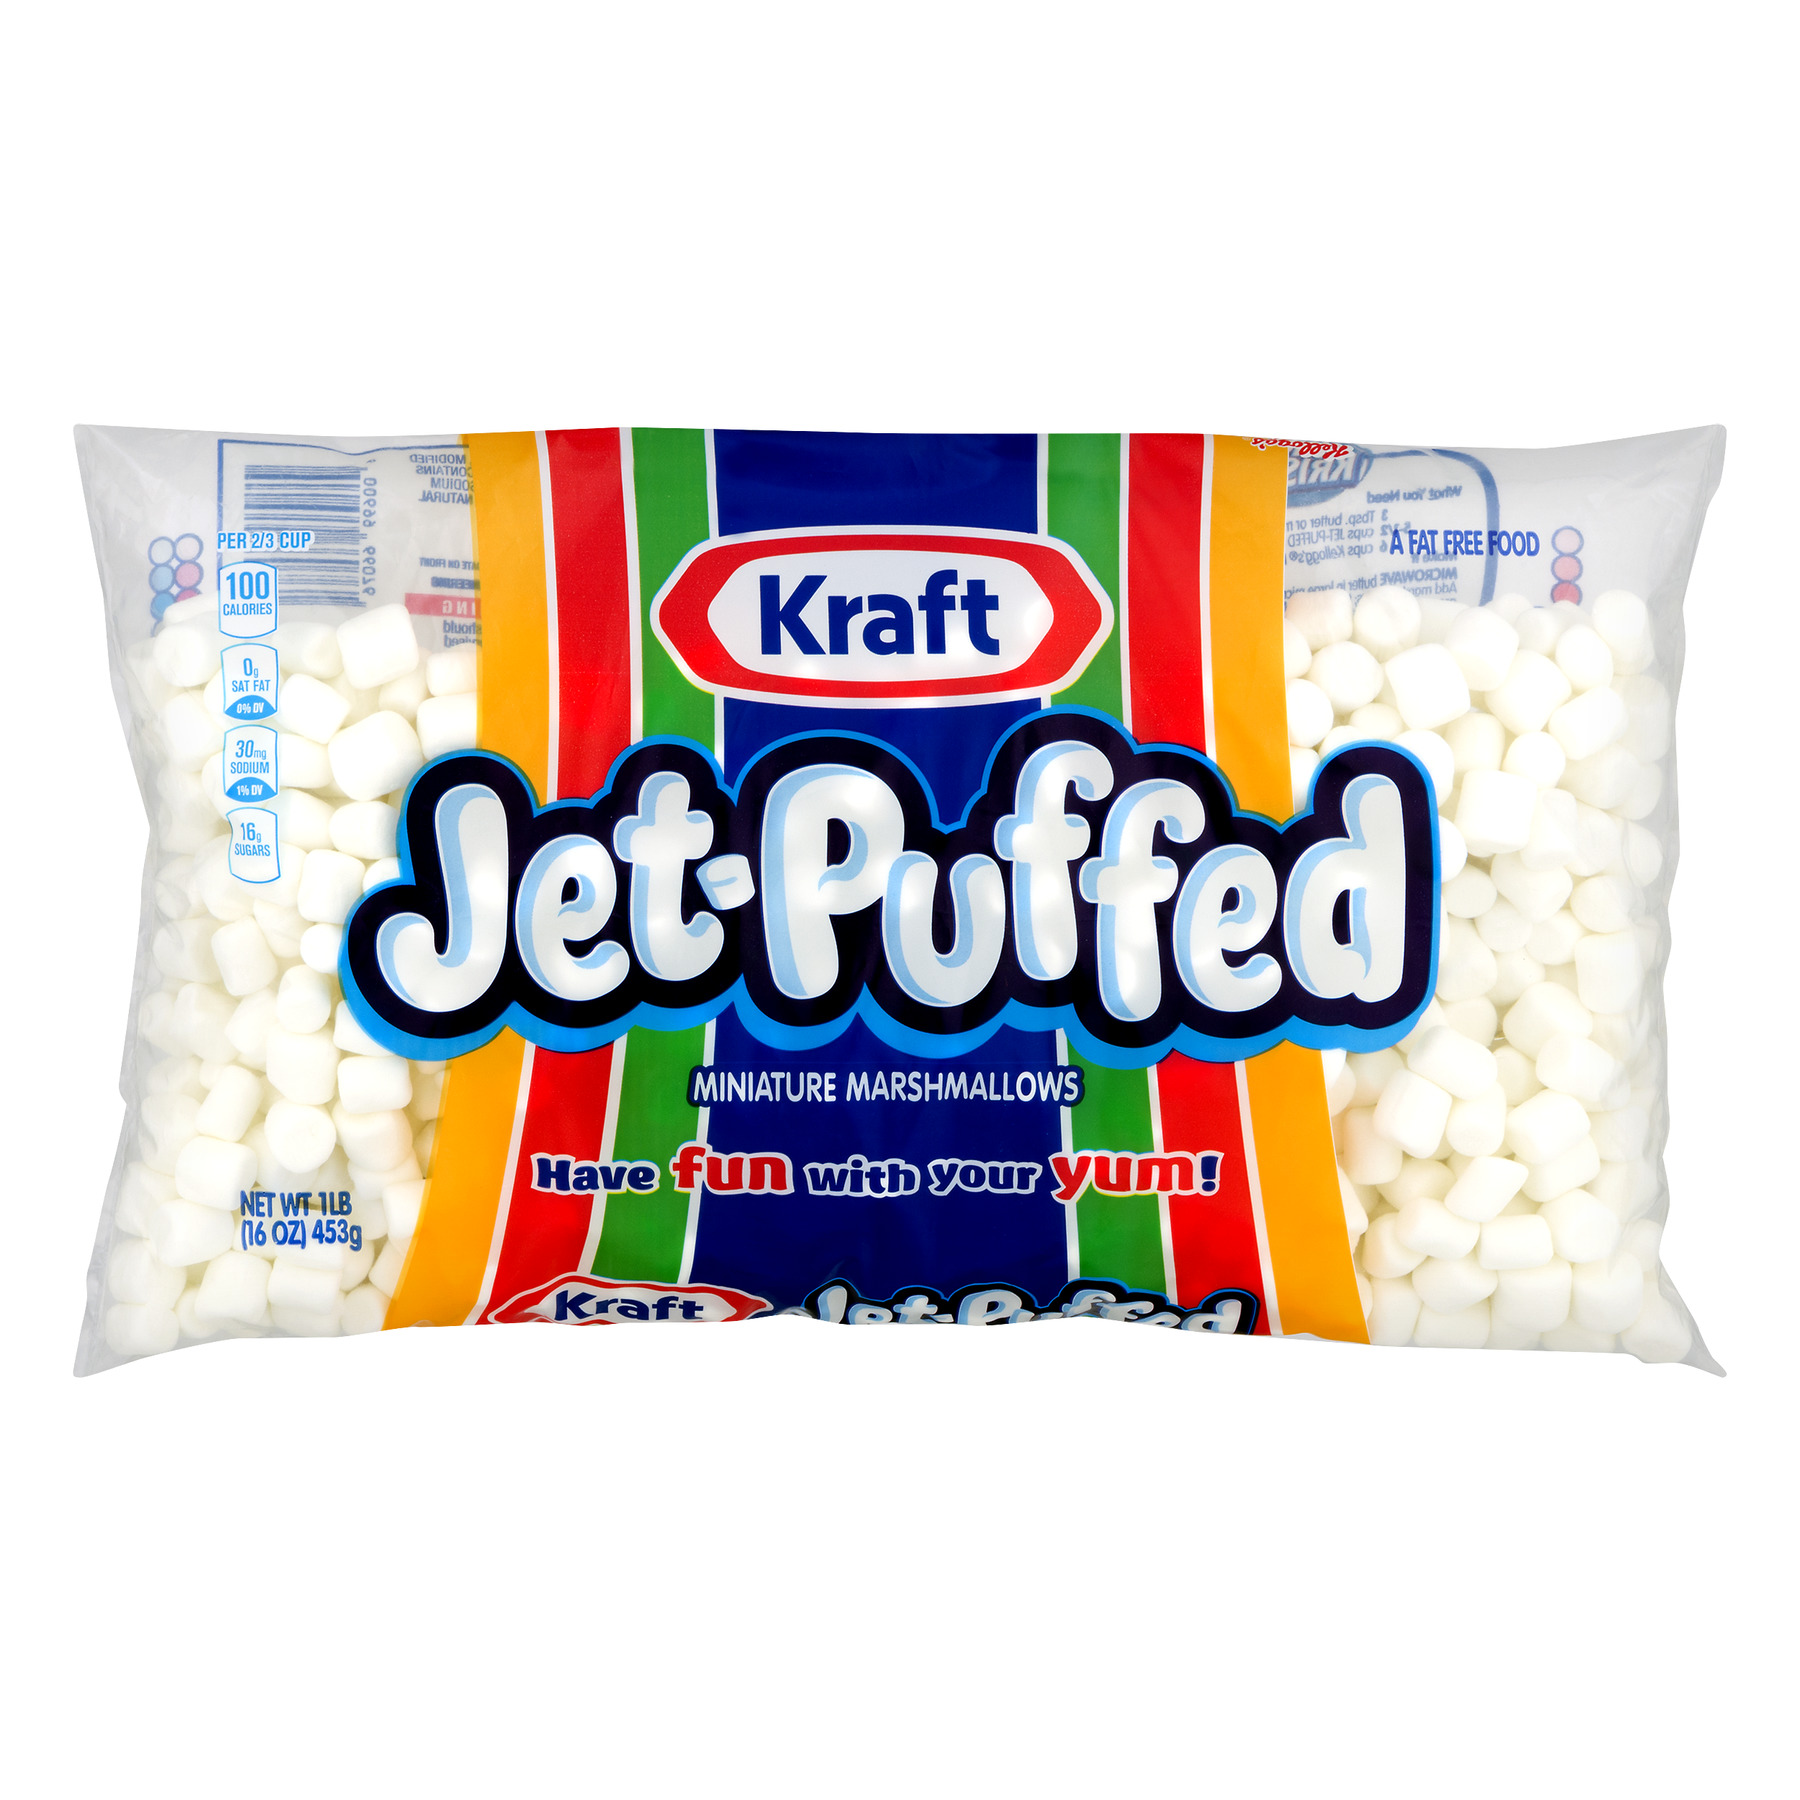 Kraft Jet-Puffed Marshmallows Miniature, 16 Oz